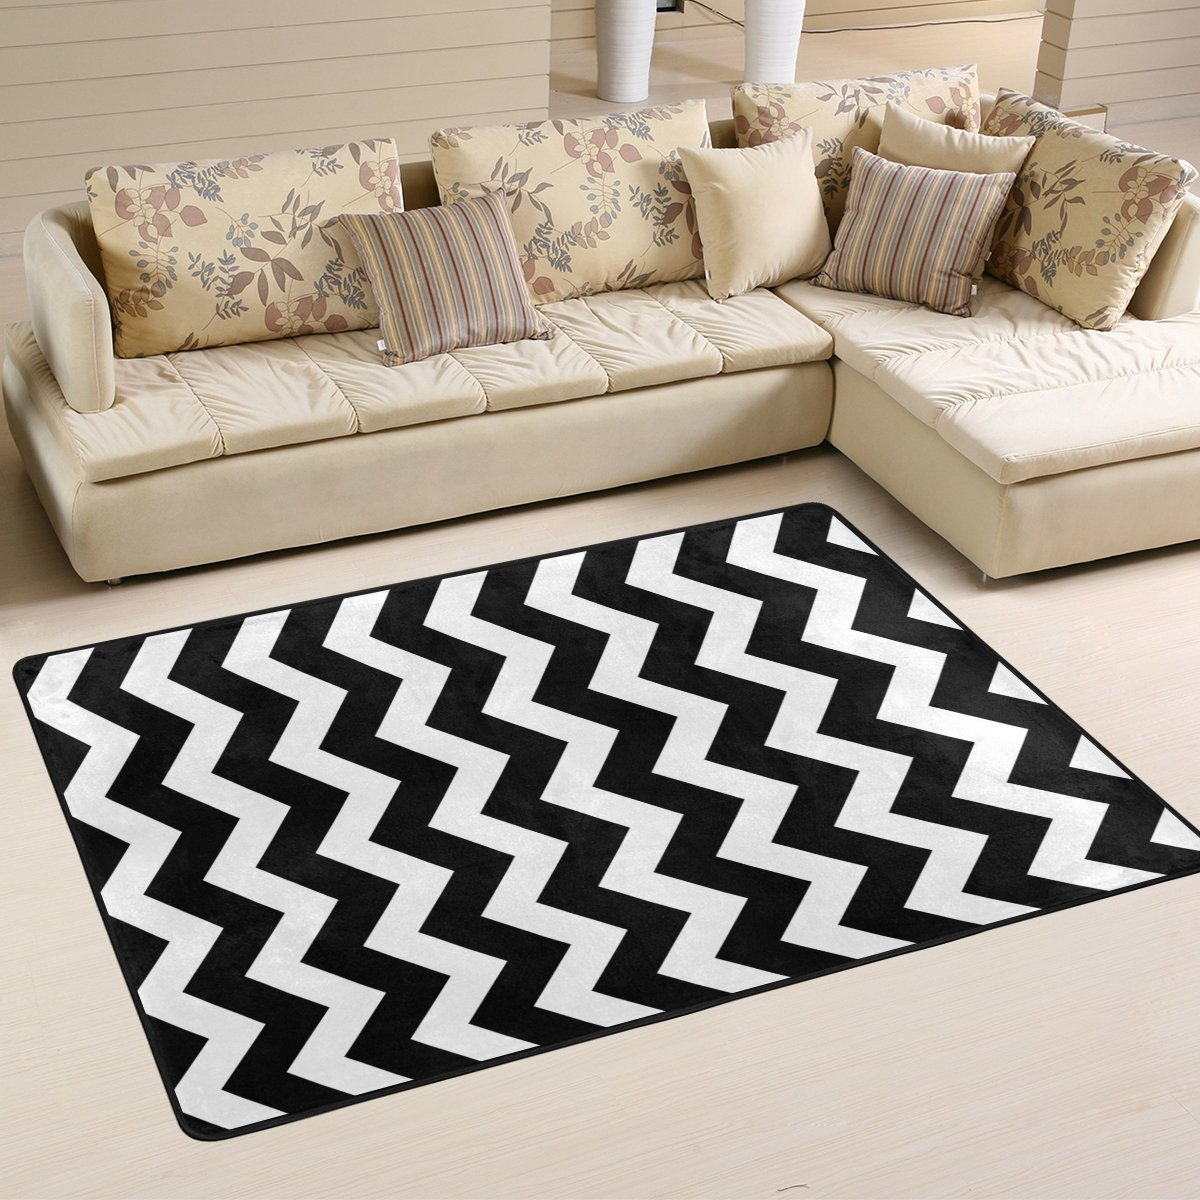 ALAZA Non Slip Area Rug Home Decor, Stylish Black White Zig Zag Durable Floor Mat Living Room Bedroom Carpets Doormats 36 x 24 inches